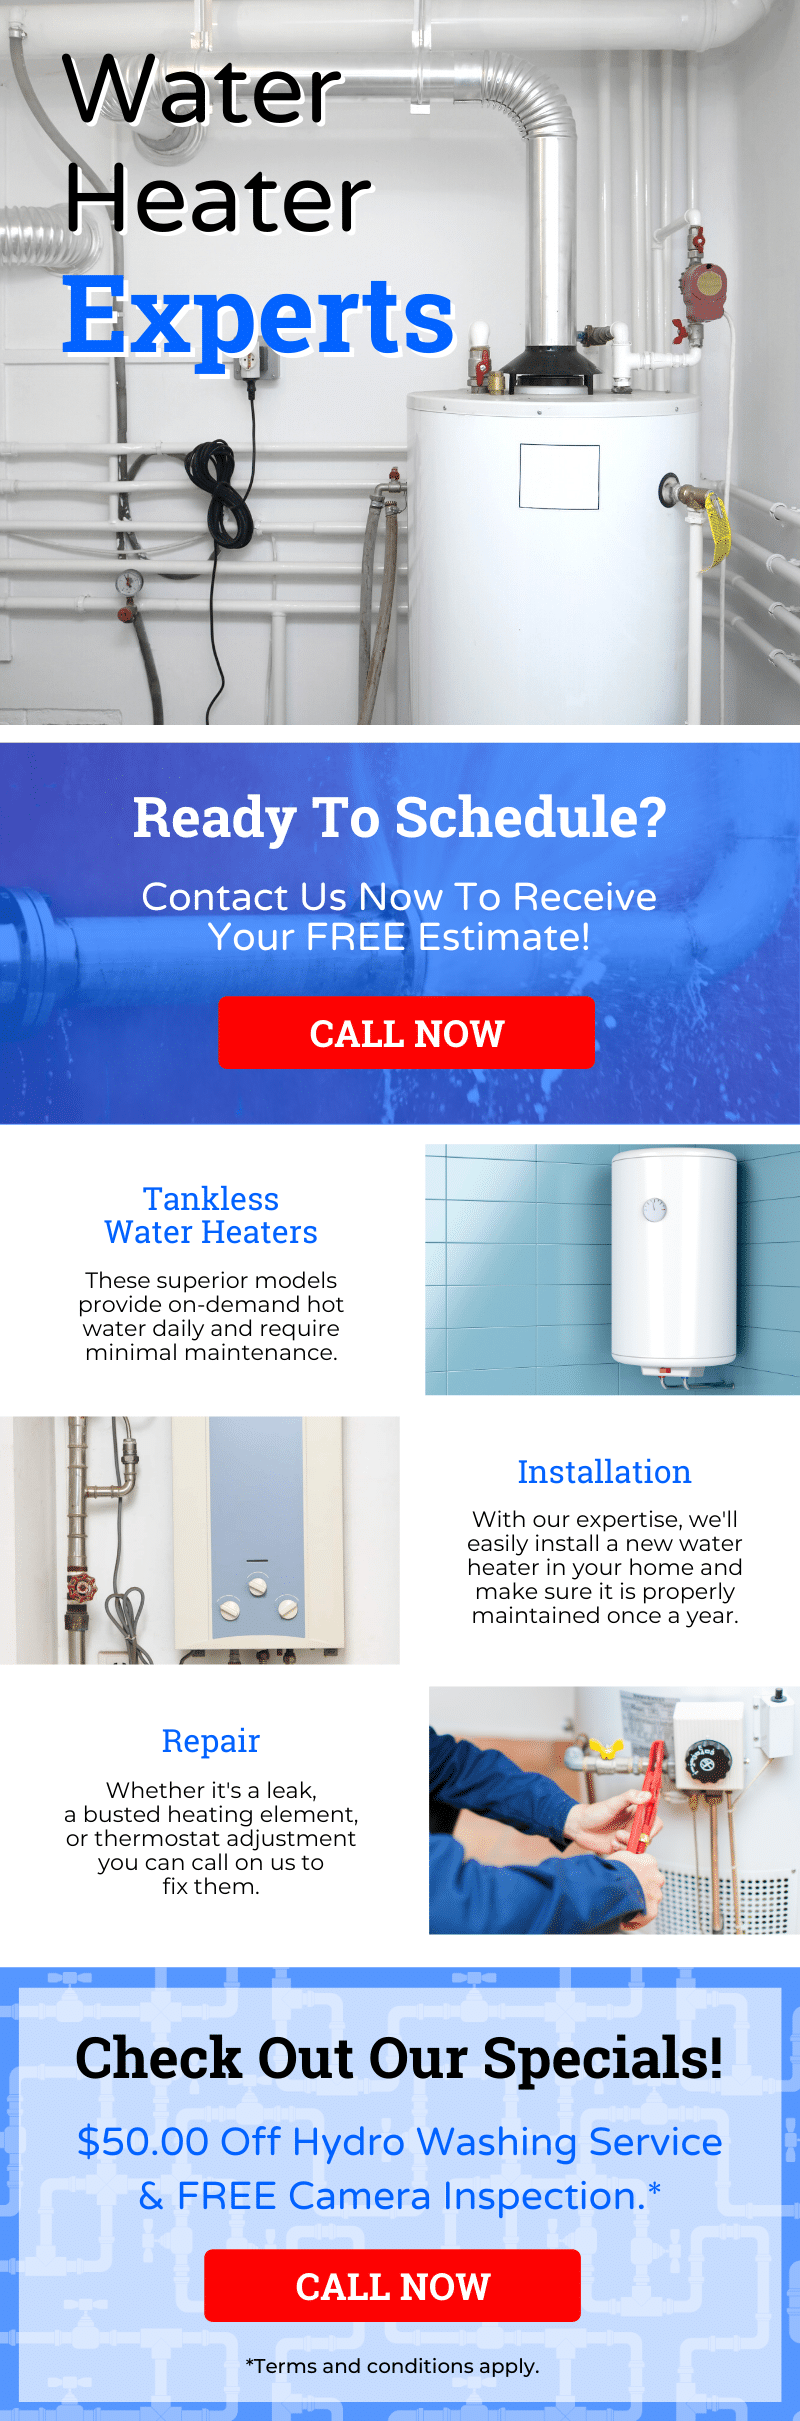 Water Heater Experts! 3